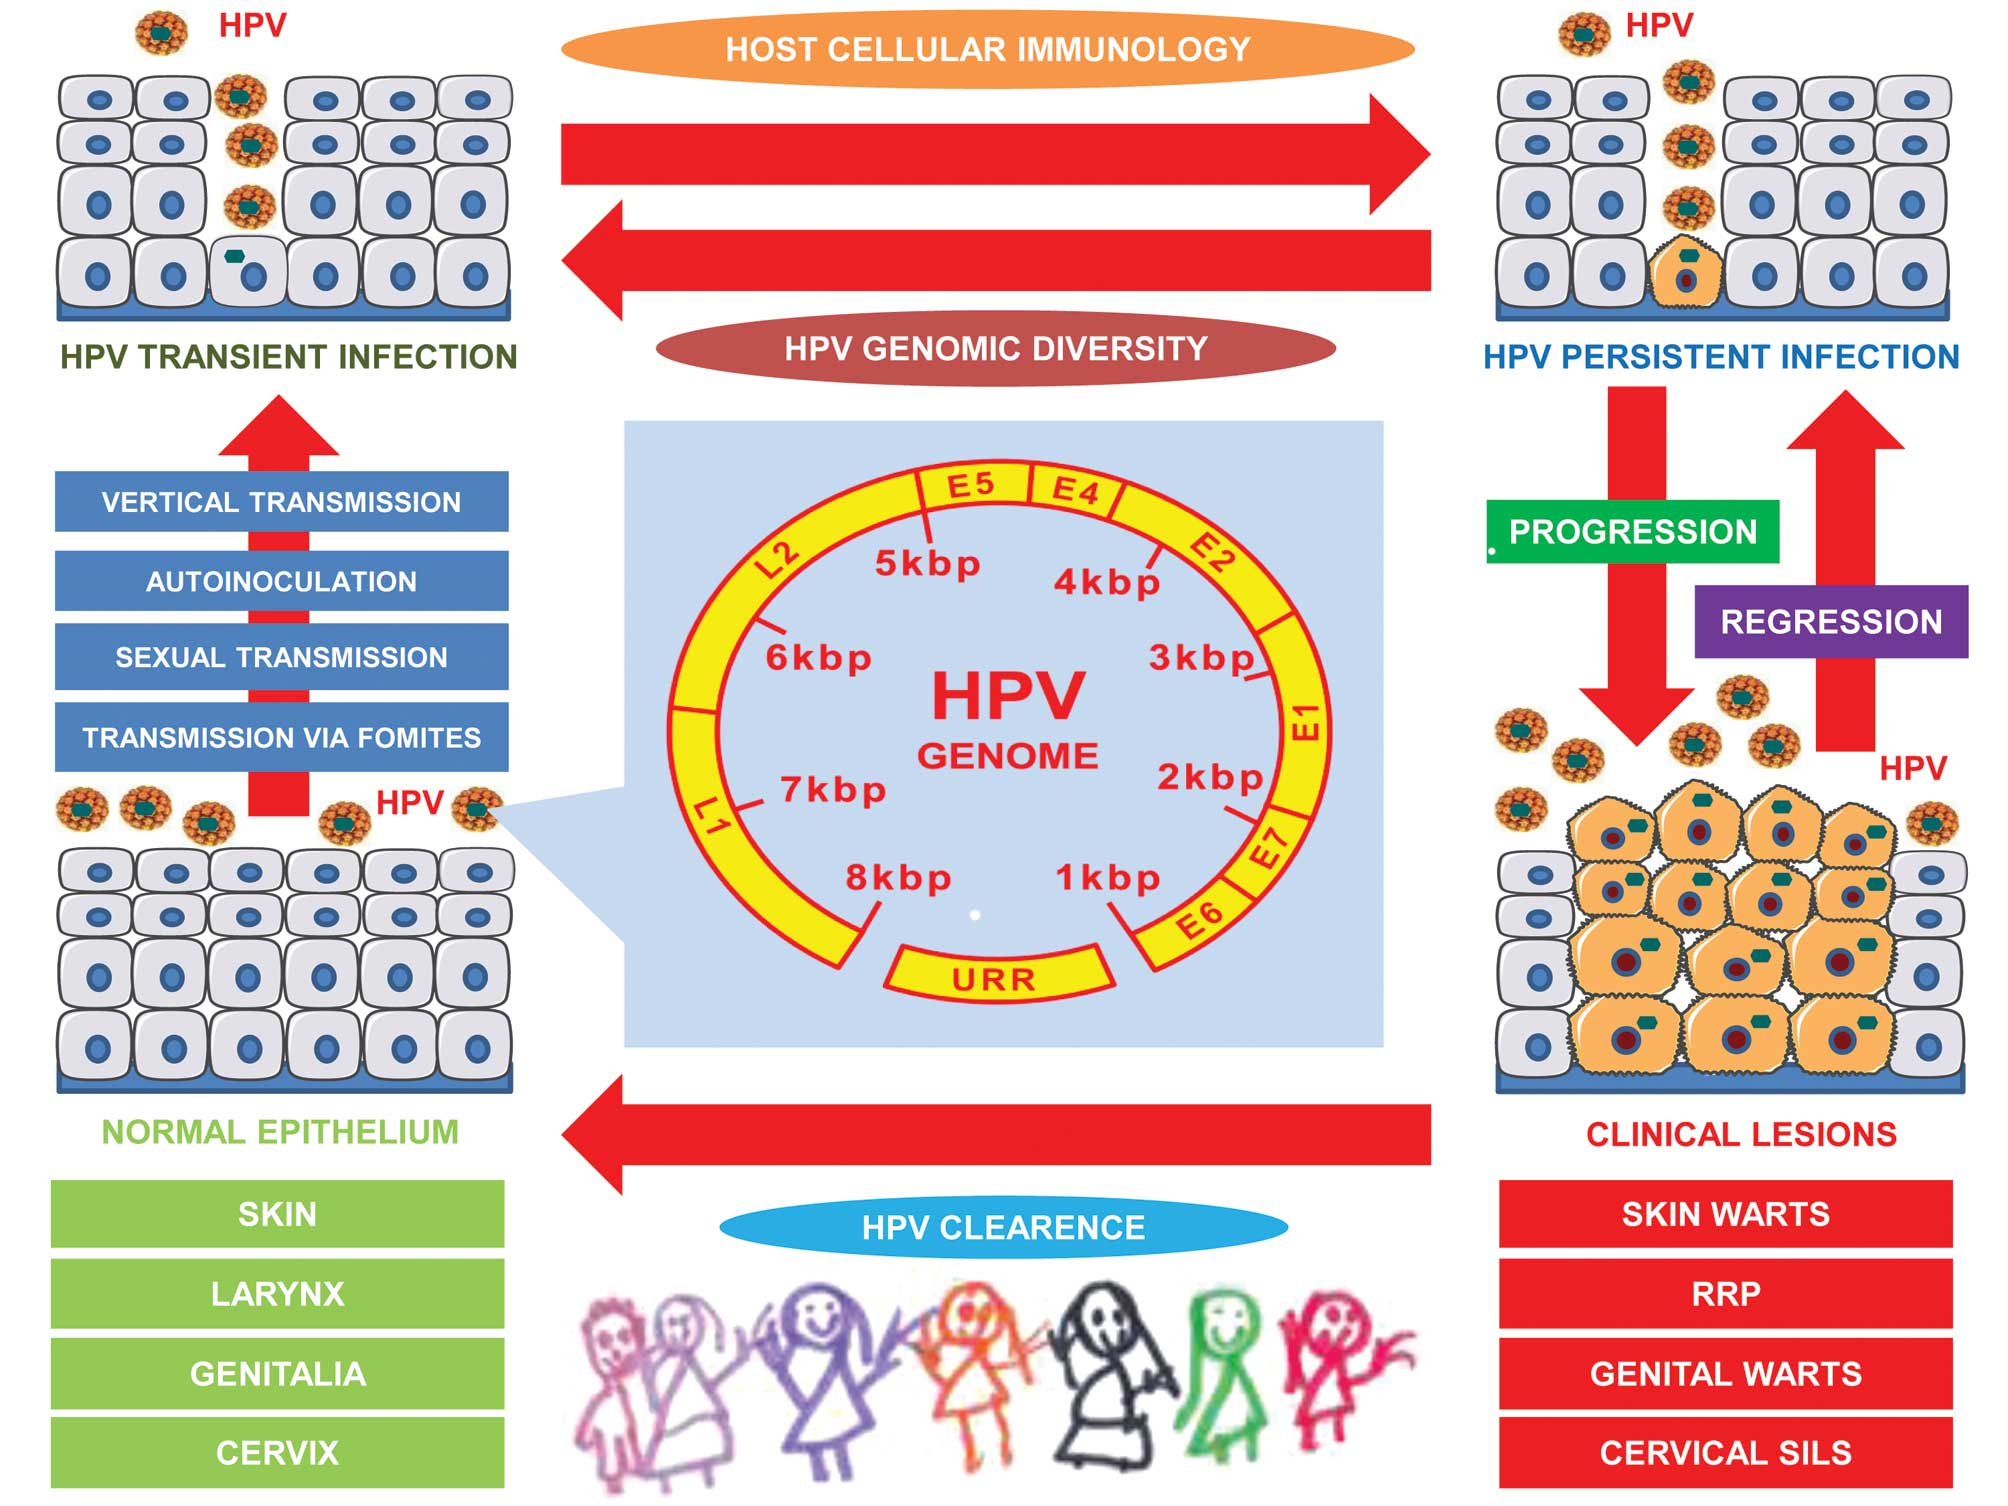 Hpv high risk ratio, Virusul HPV. Tipuri de leziuni HPV: Diagnostic, tratament si prevenire